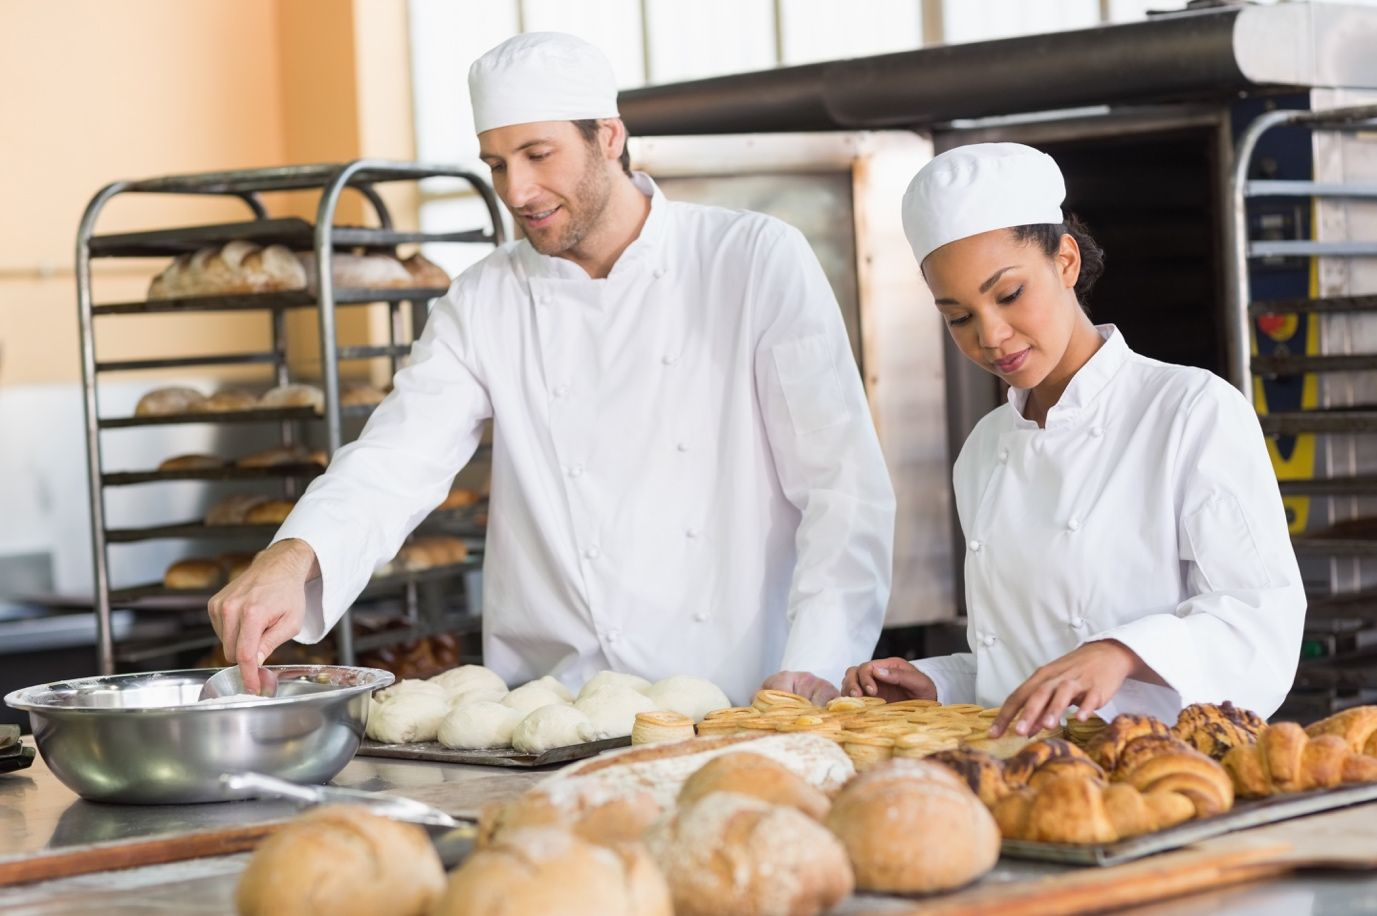 factors to consider when selecting kitchen equipment